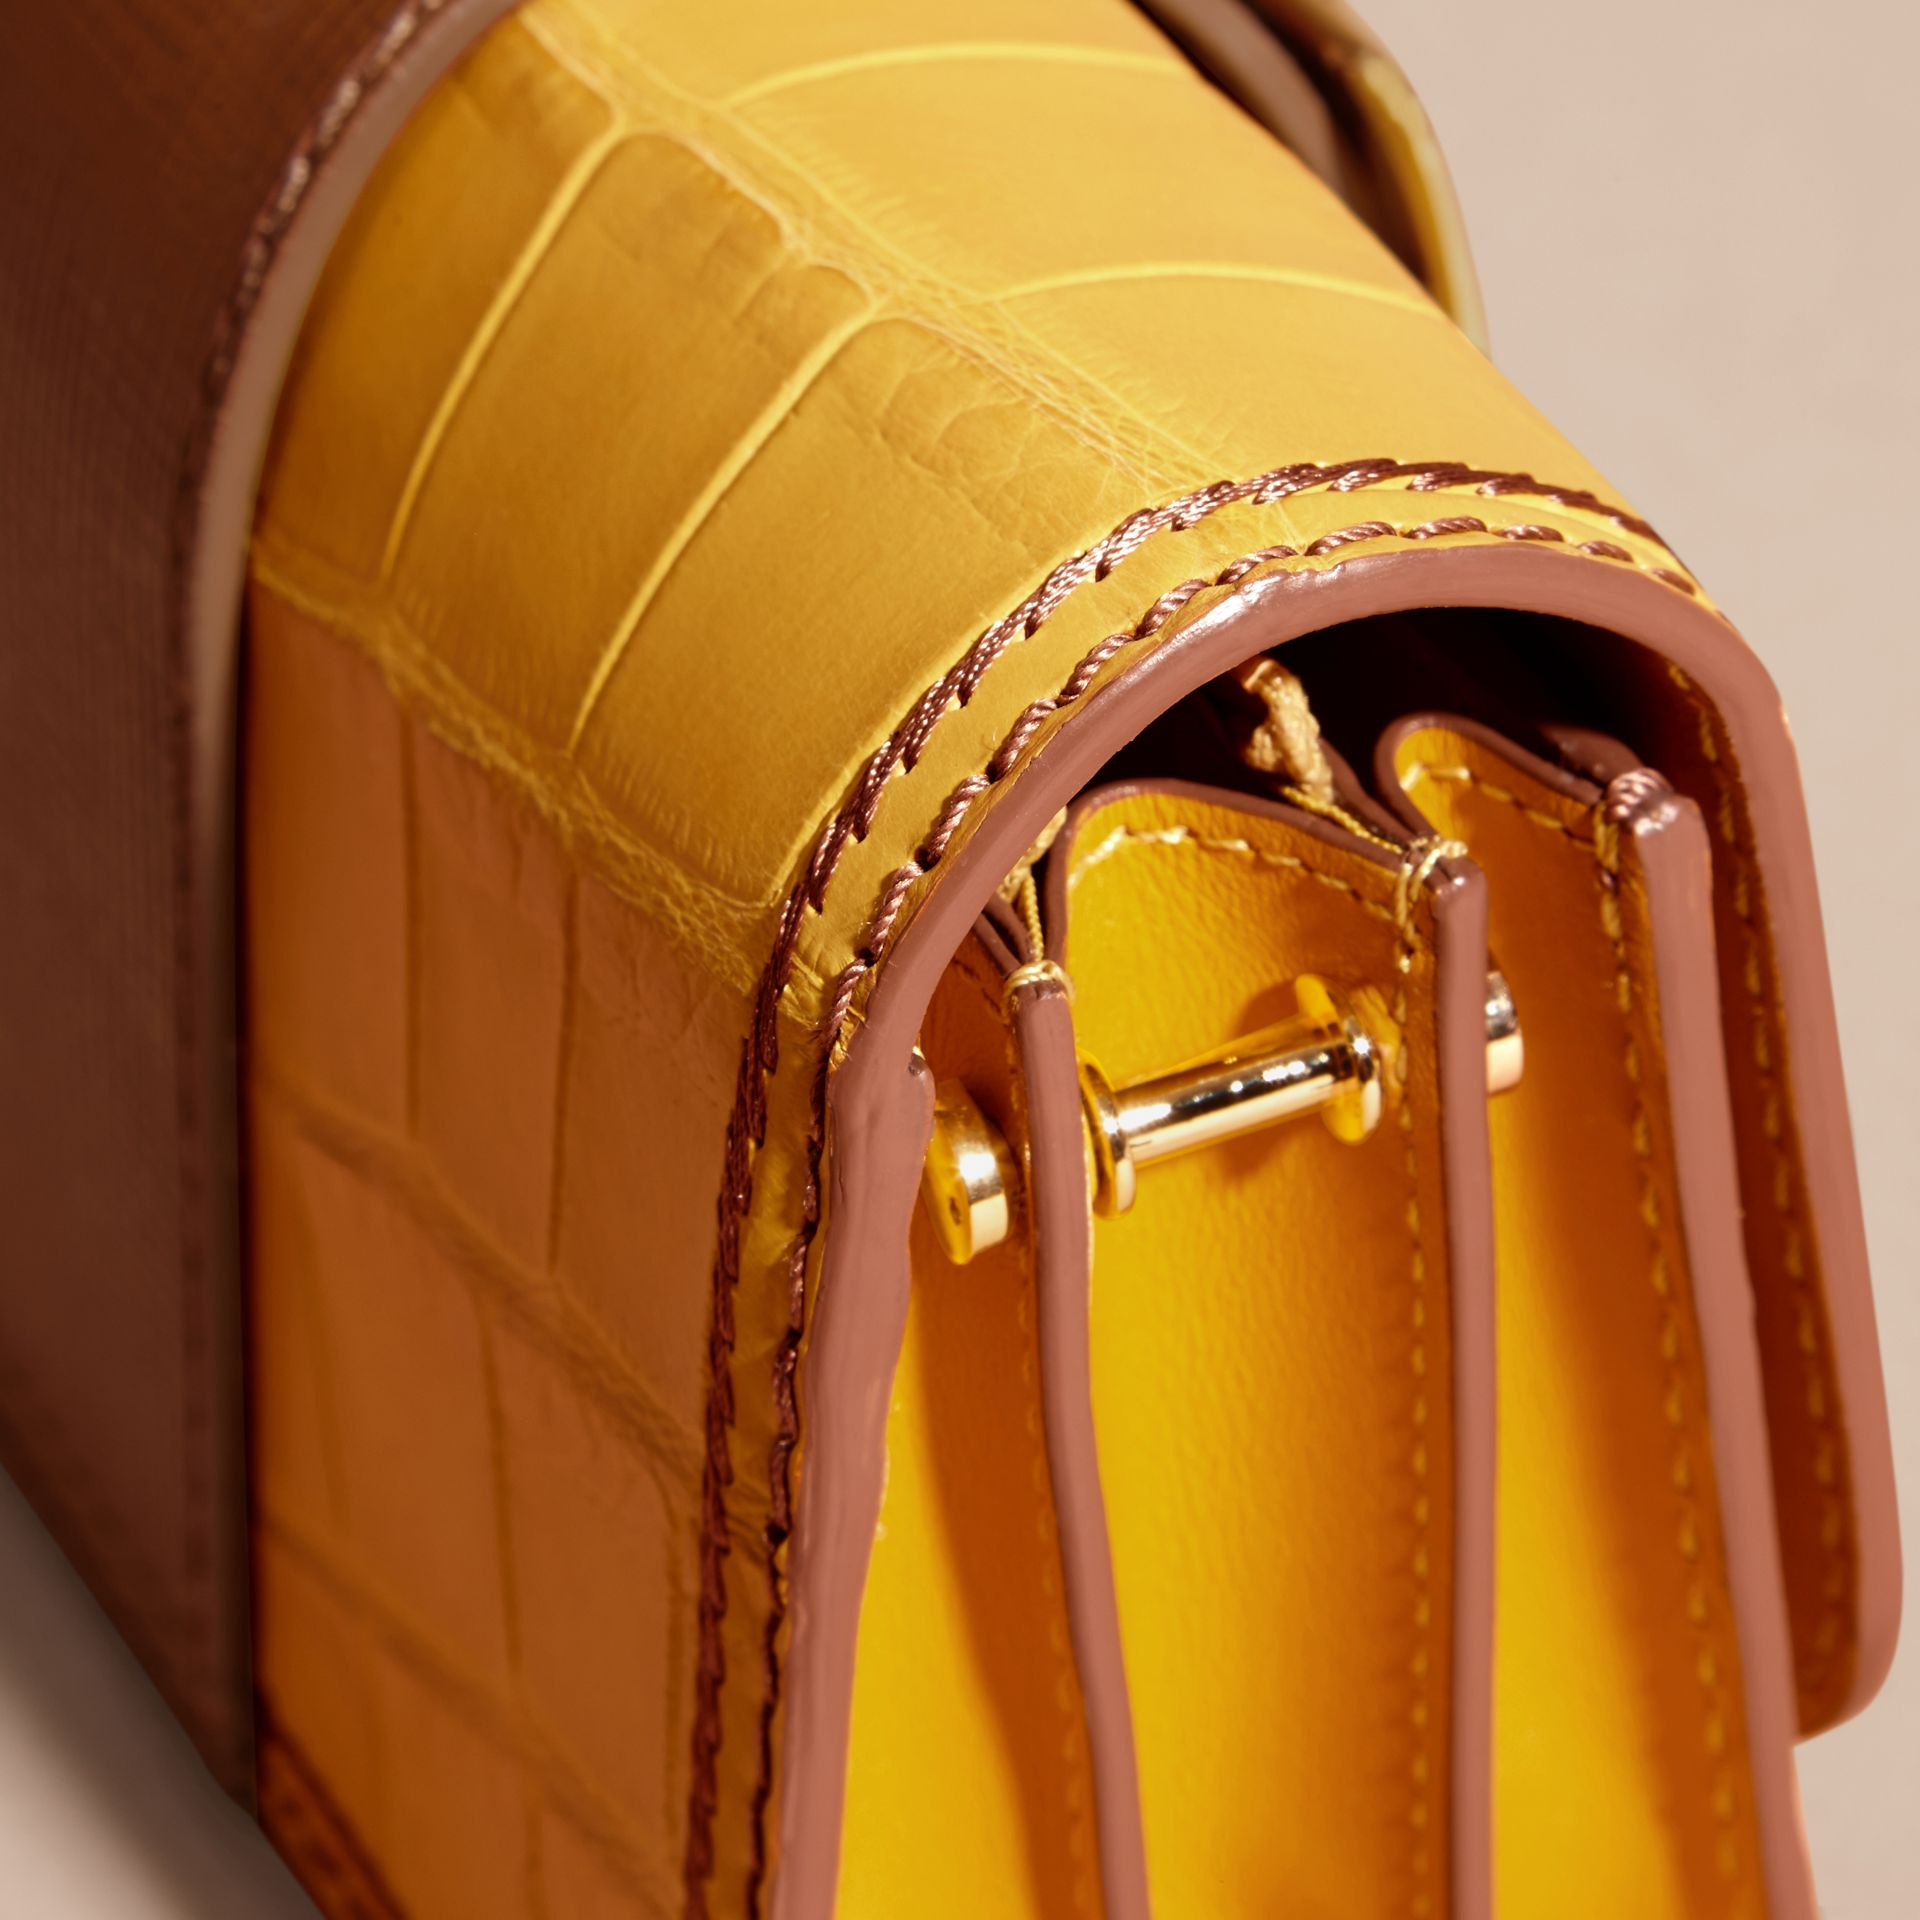 Jaune agrume/hâle Petit sac The Buckle en alligator et cuir Jaune Agrume/hâle - photo de la galerie 2